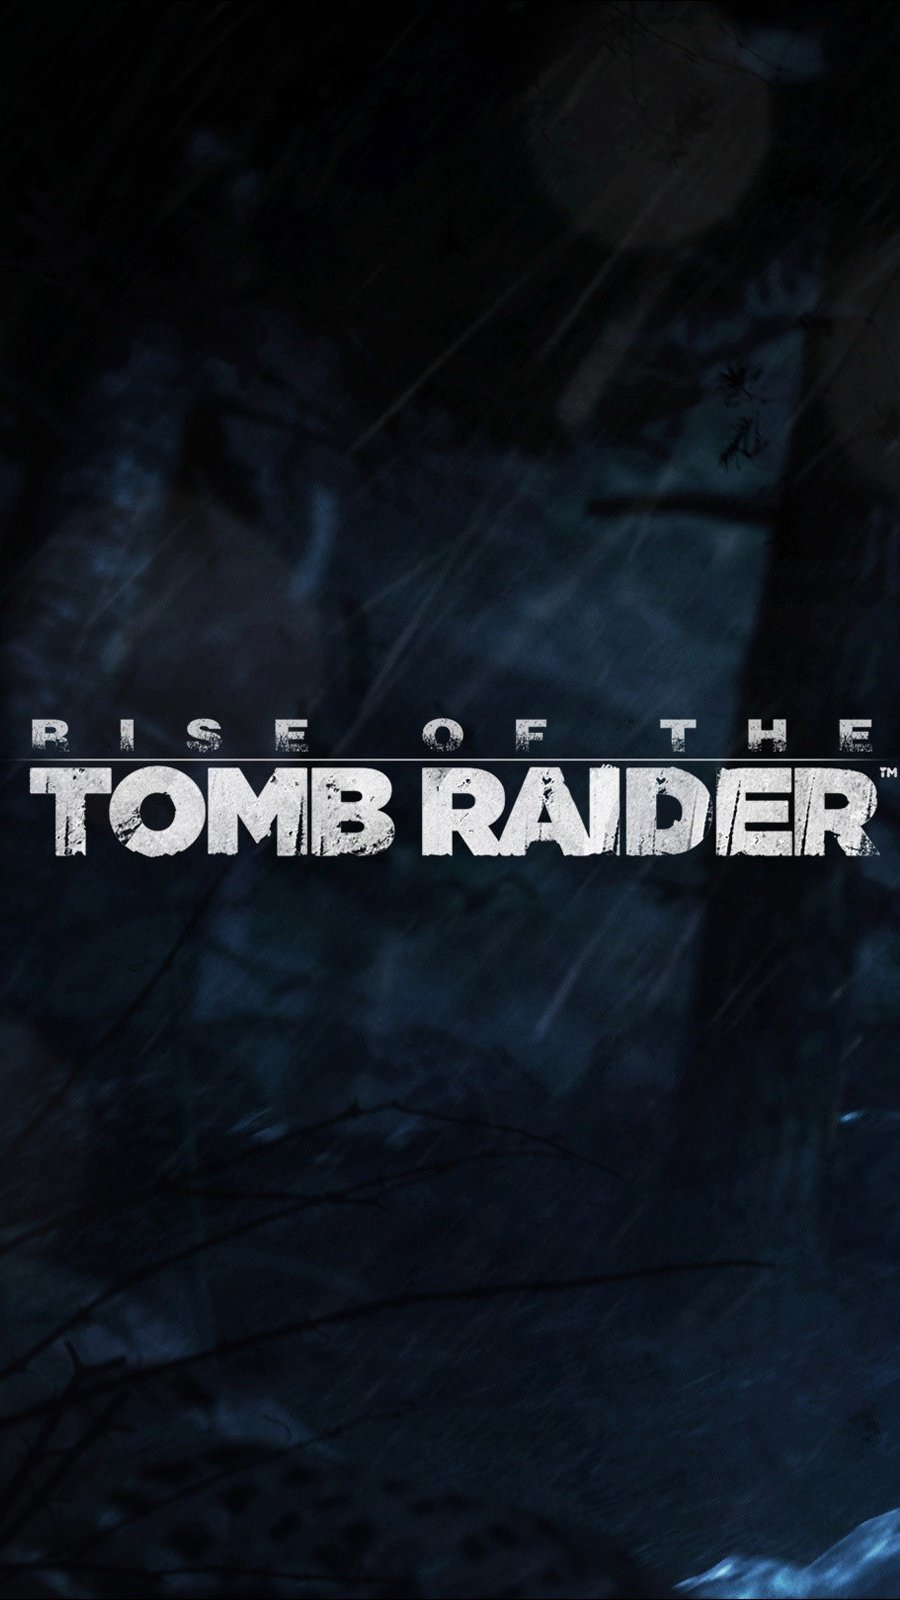 Wallpaper Fanart by Rise of Tomb Raider Vertical